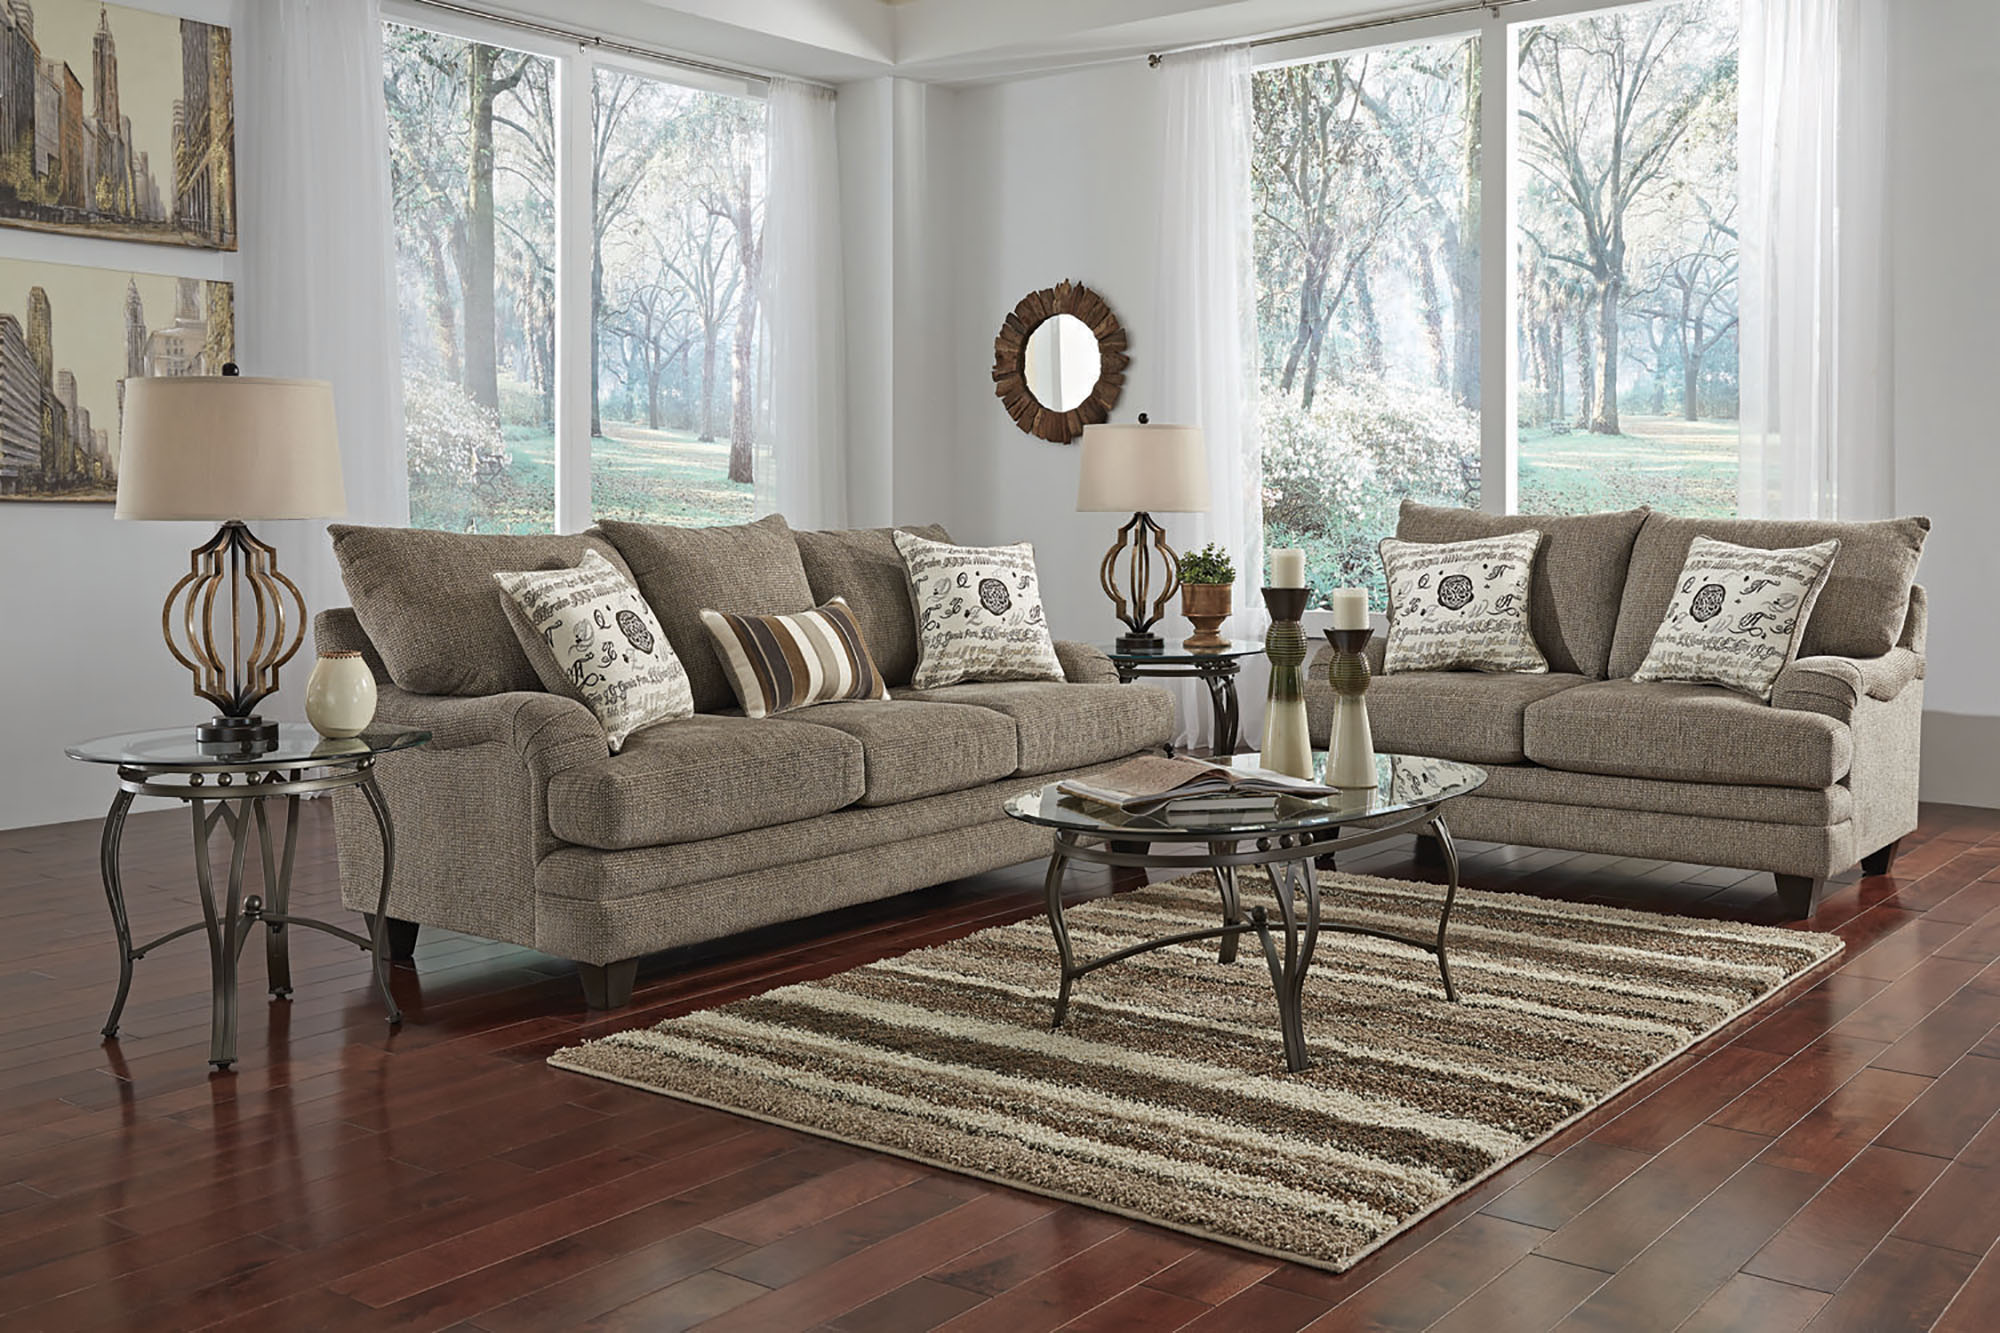 woodhaven living room furniture small bar design in sets w85 mello lr jpg